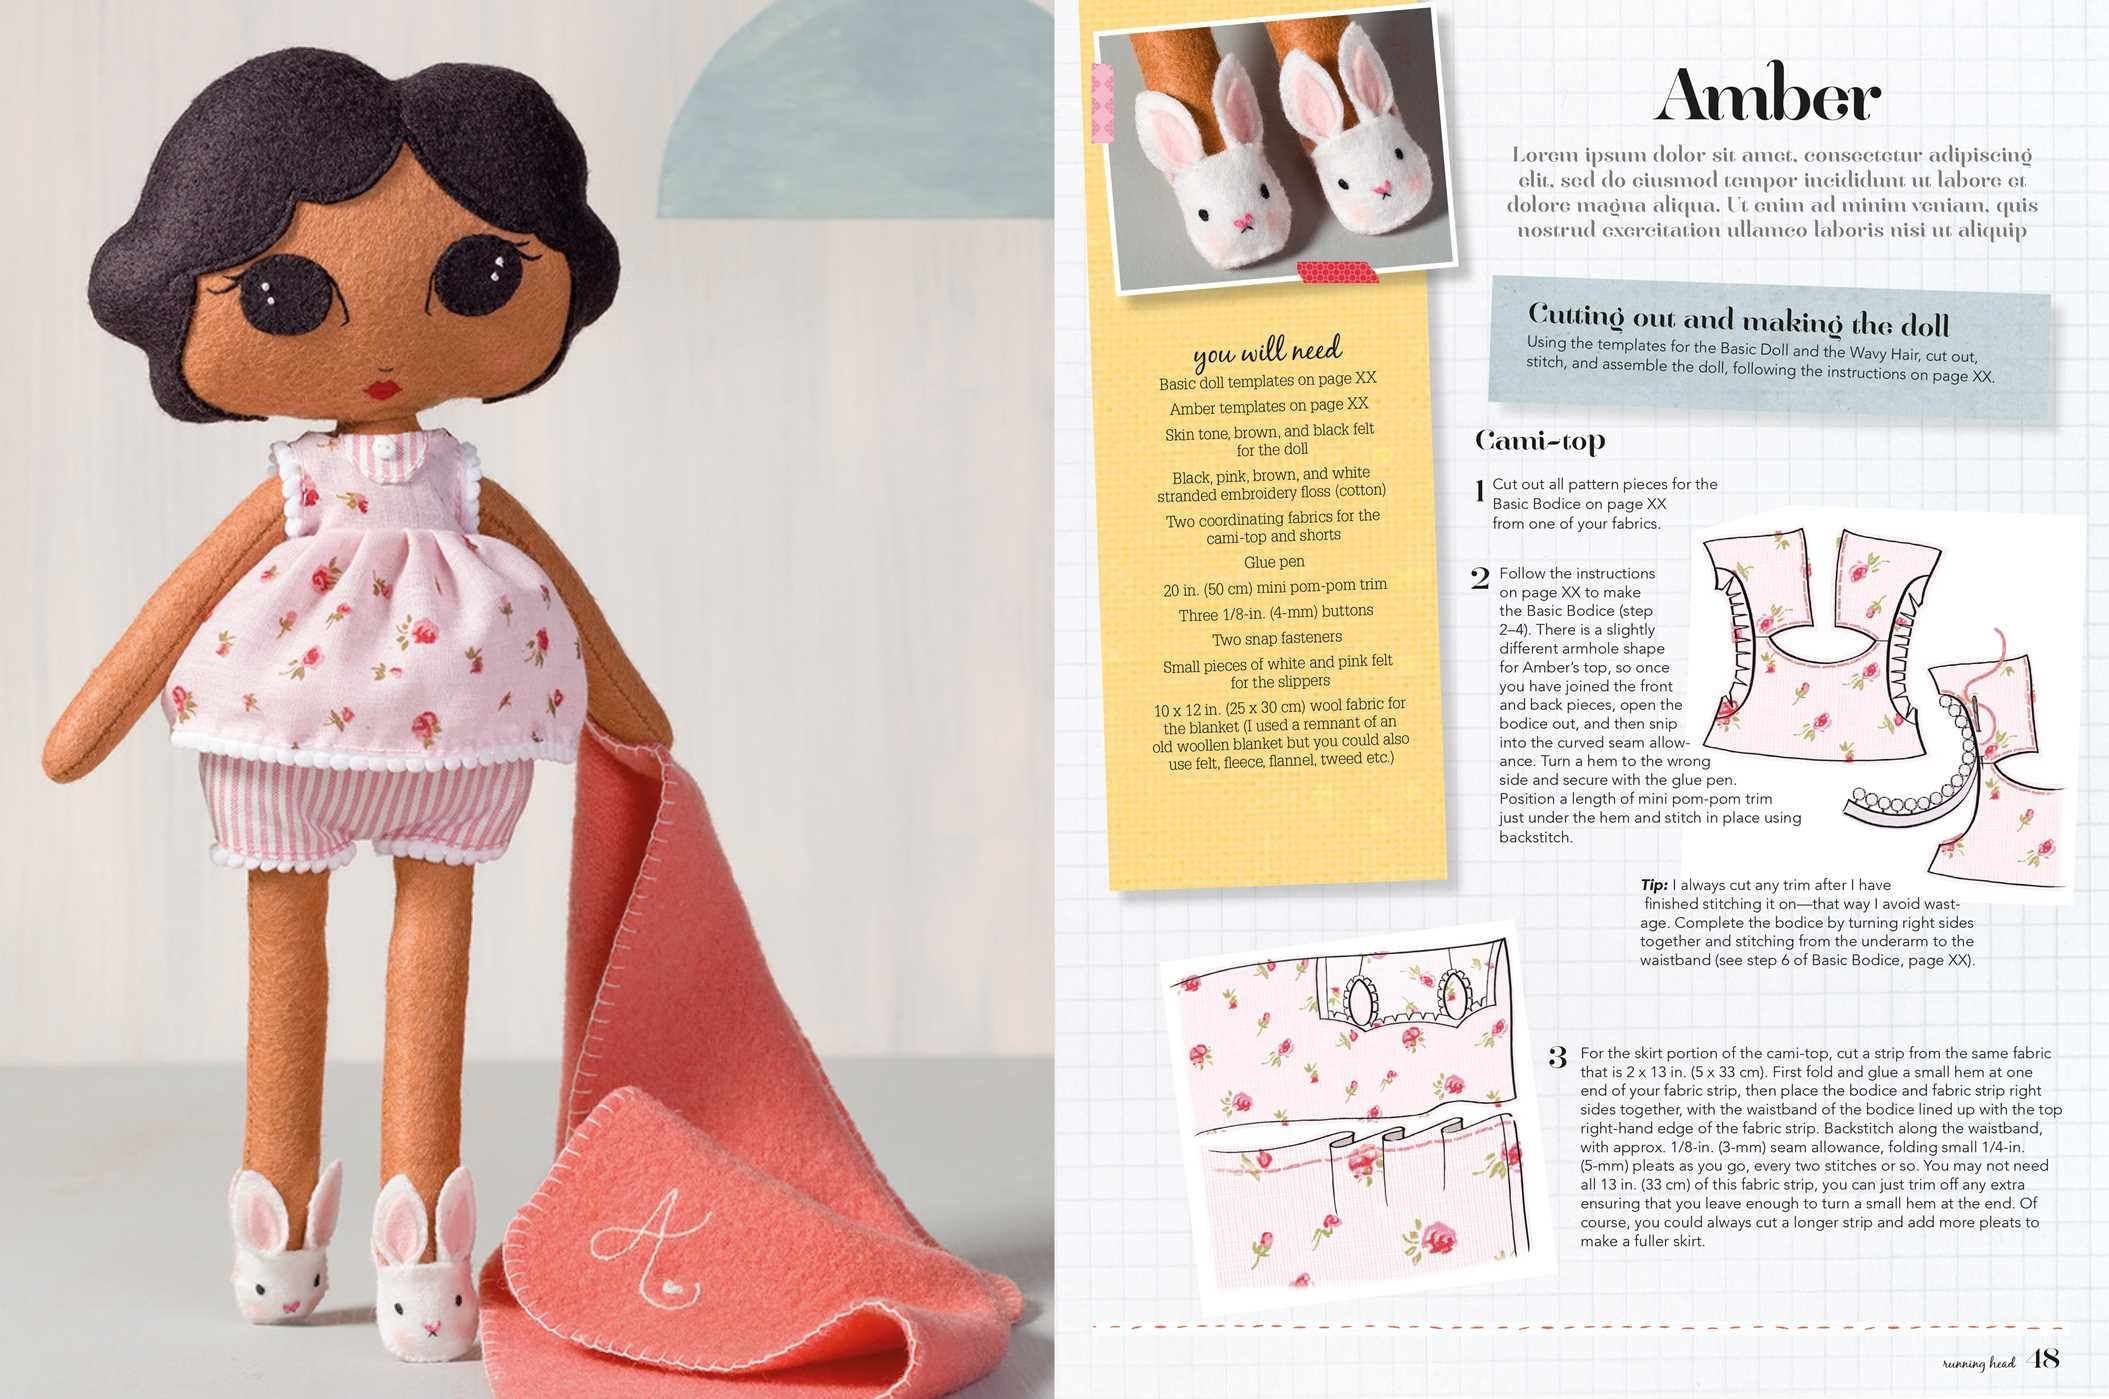 Sew Your Own Dolls: 25 stylish dolls to make and personalize: Louise ...